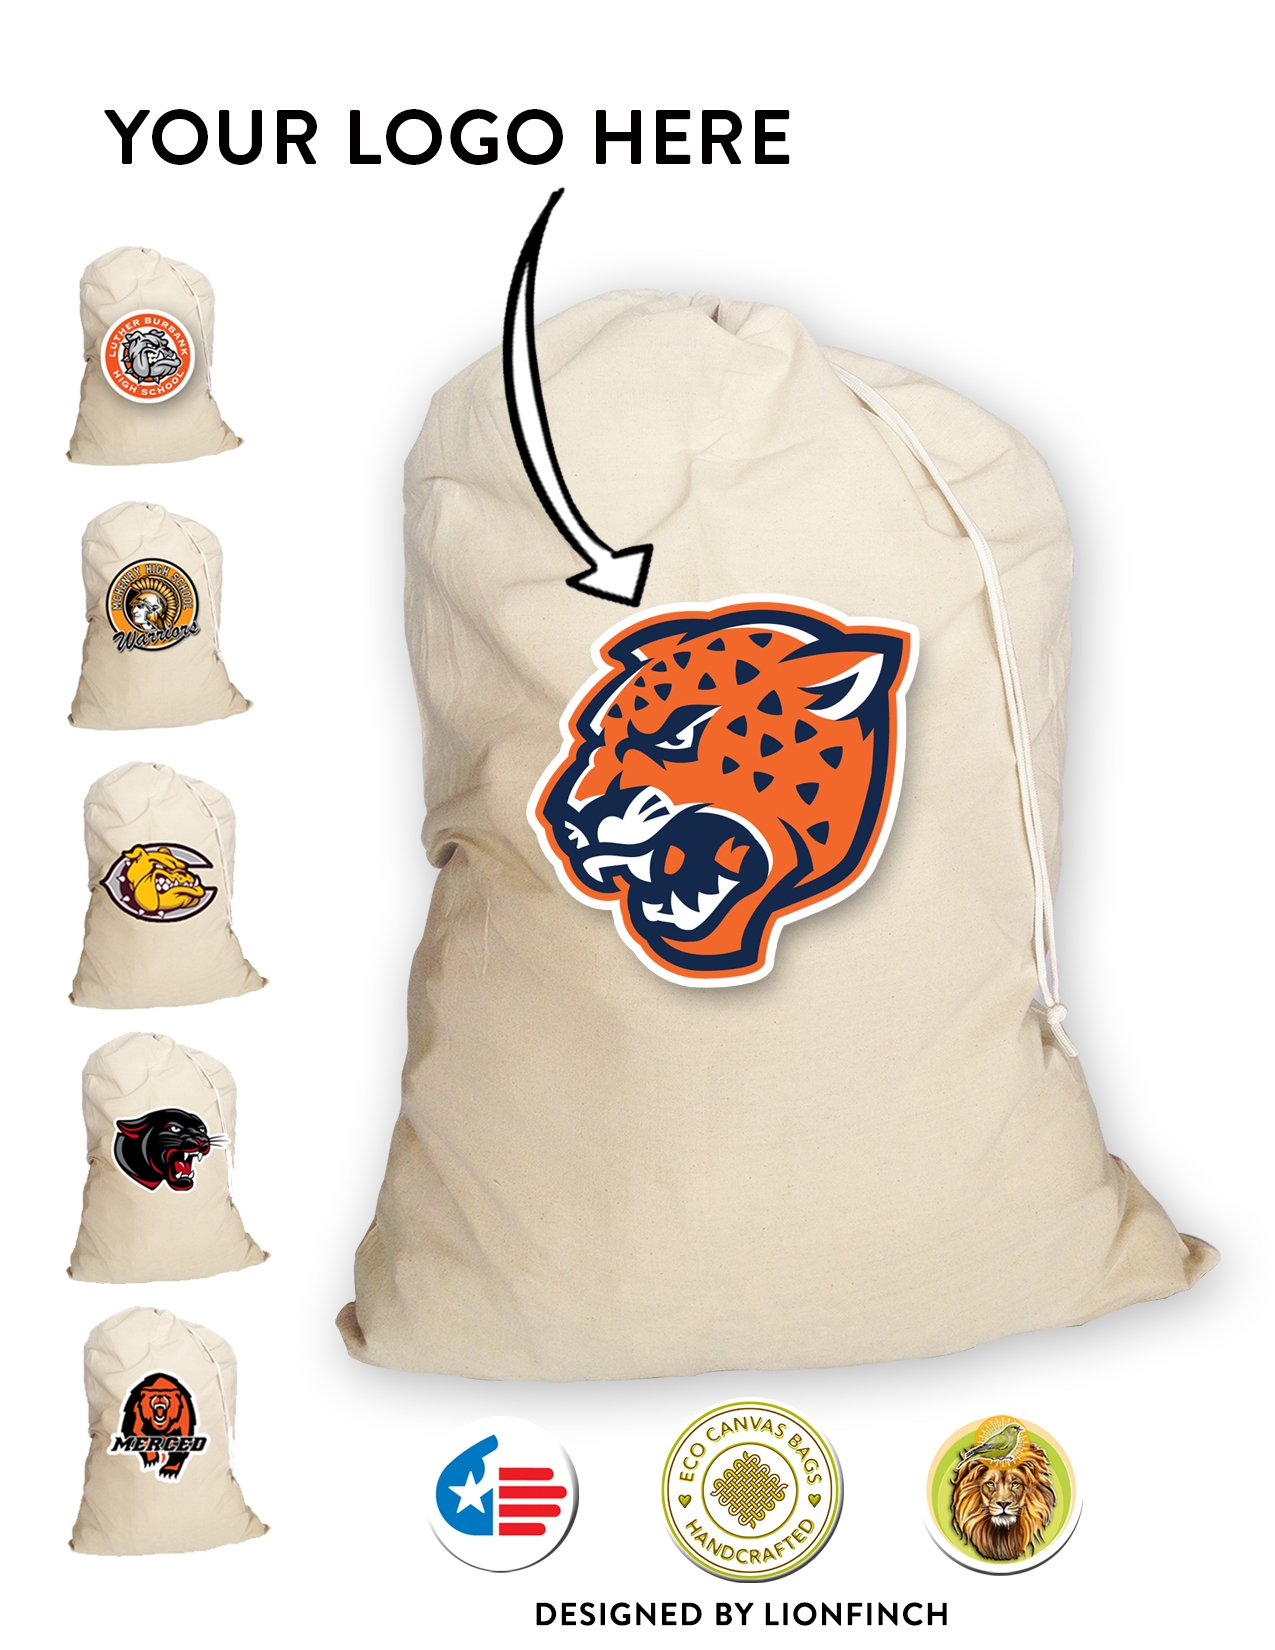 Custom Silk Screened Volleyball Equipment/Ball Bags With Your Cool Logo- 100 Count. Heavy Duty, Extra Large- 150 Pound Load Capacity Canvas Bags. Proudly Made in America.